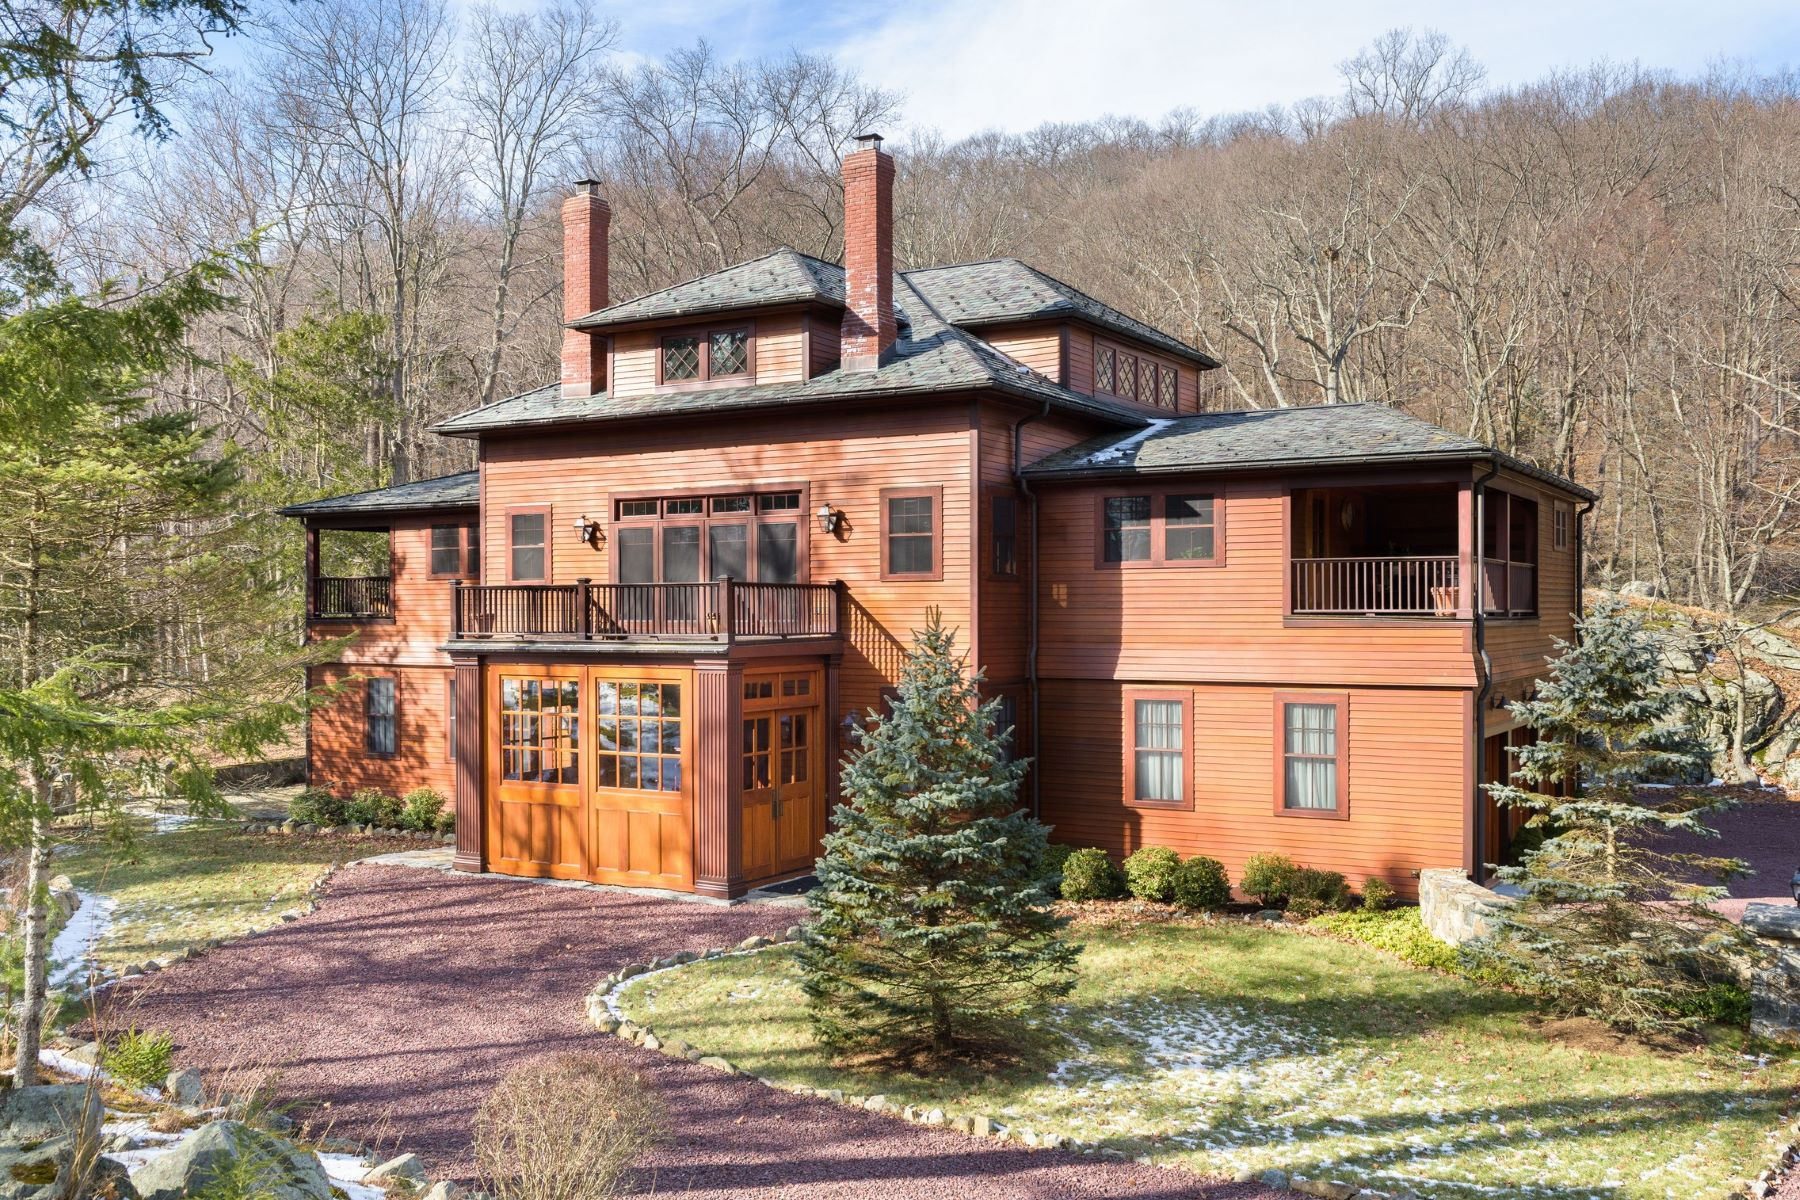 Villa per Vendita alle ore Patterson Brook Carriage House 18 Patterson Brook Rd Tuxedo Park, New York, 10987 Stati Uniti